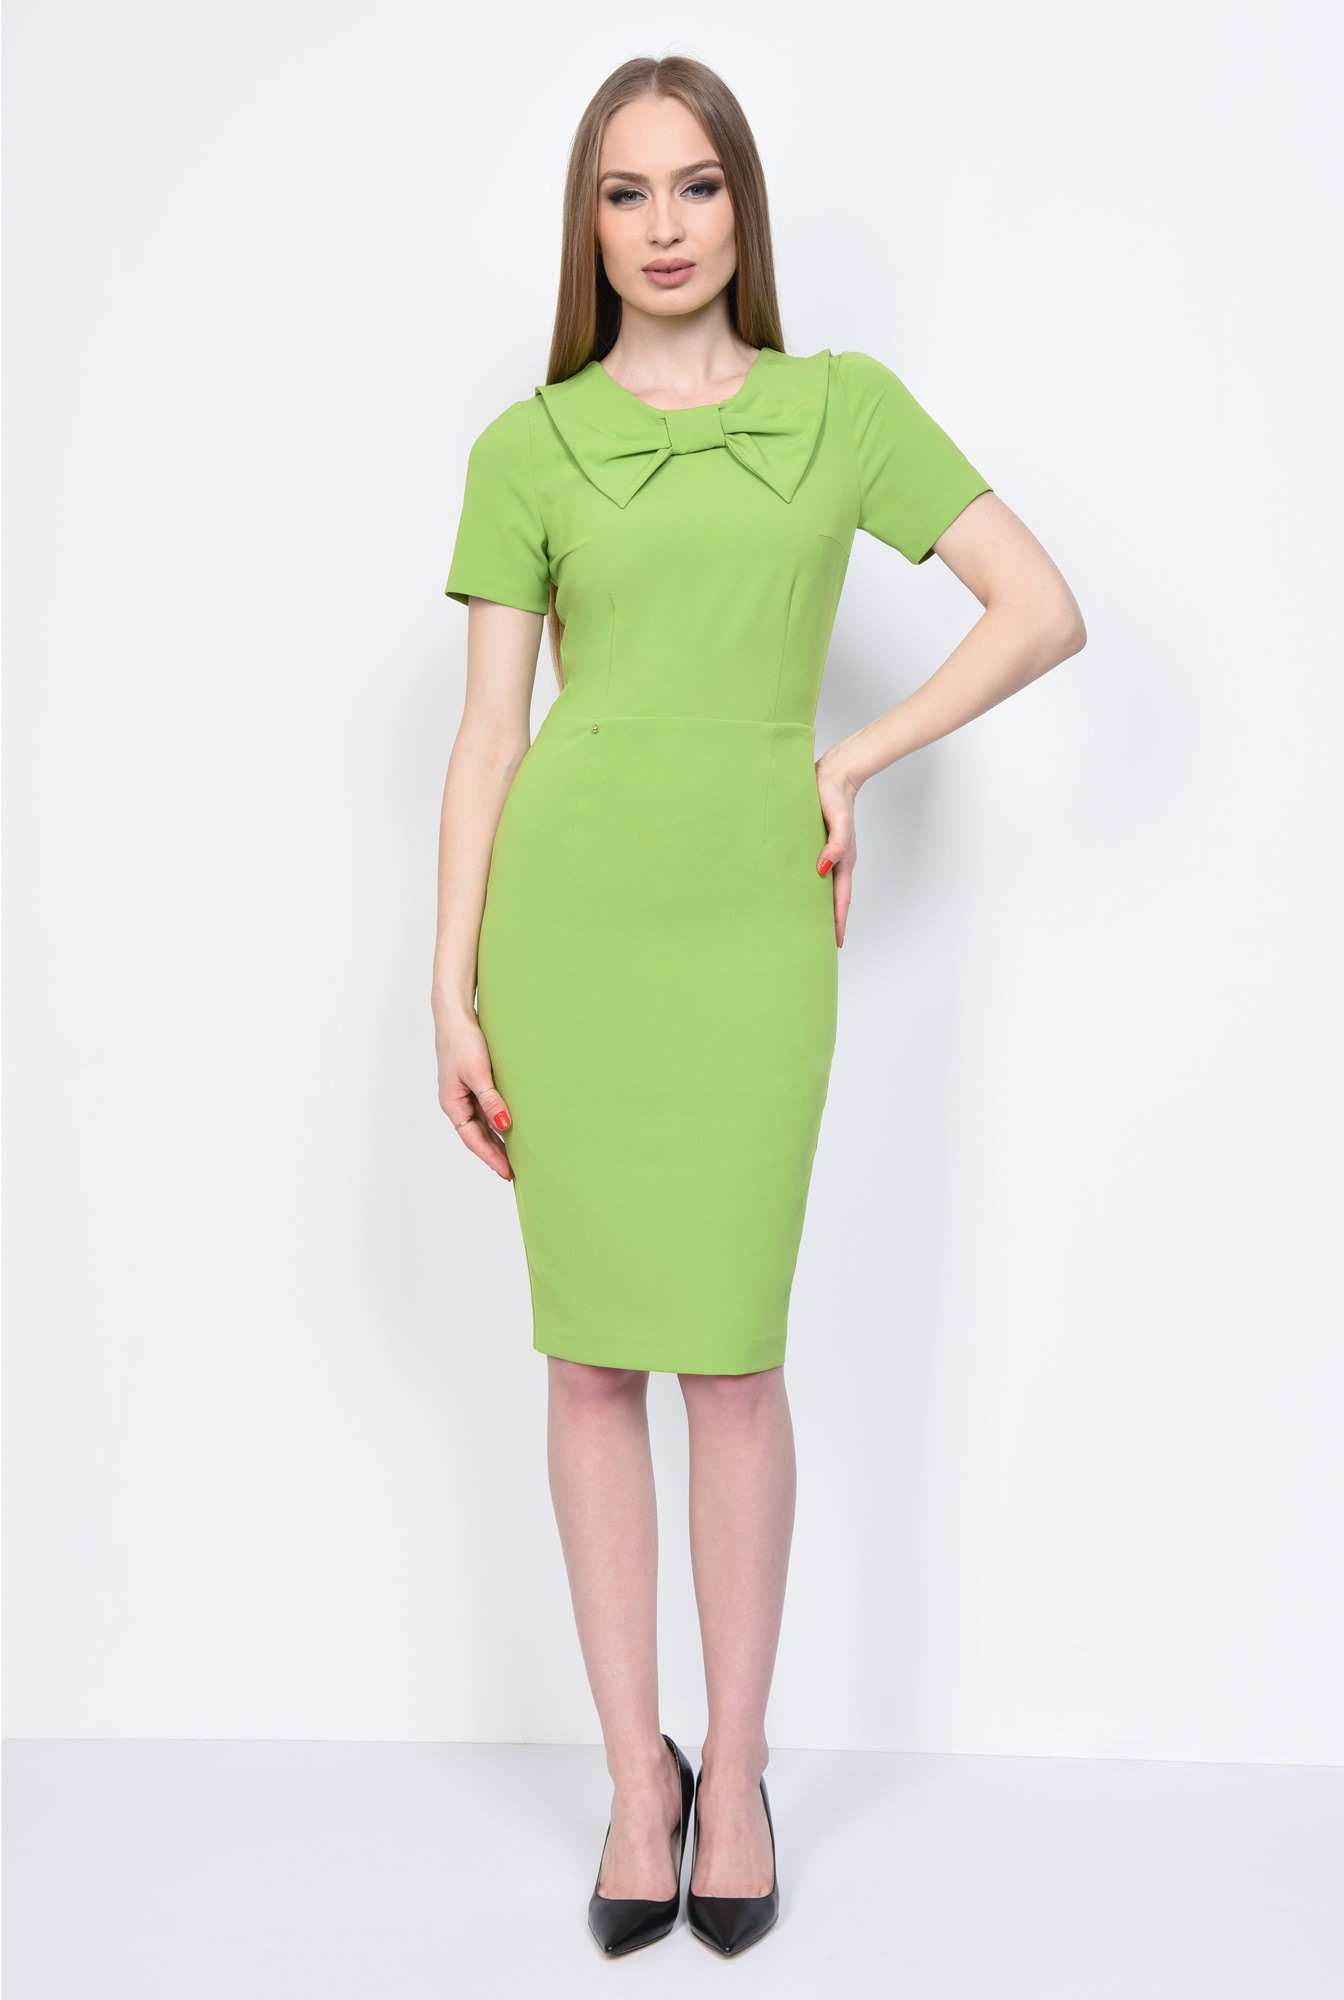 2 - ROCHIE OFFICE CONICA R 265-VERDE